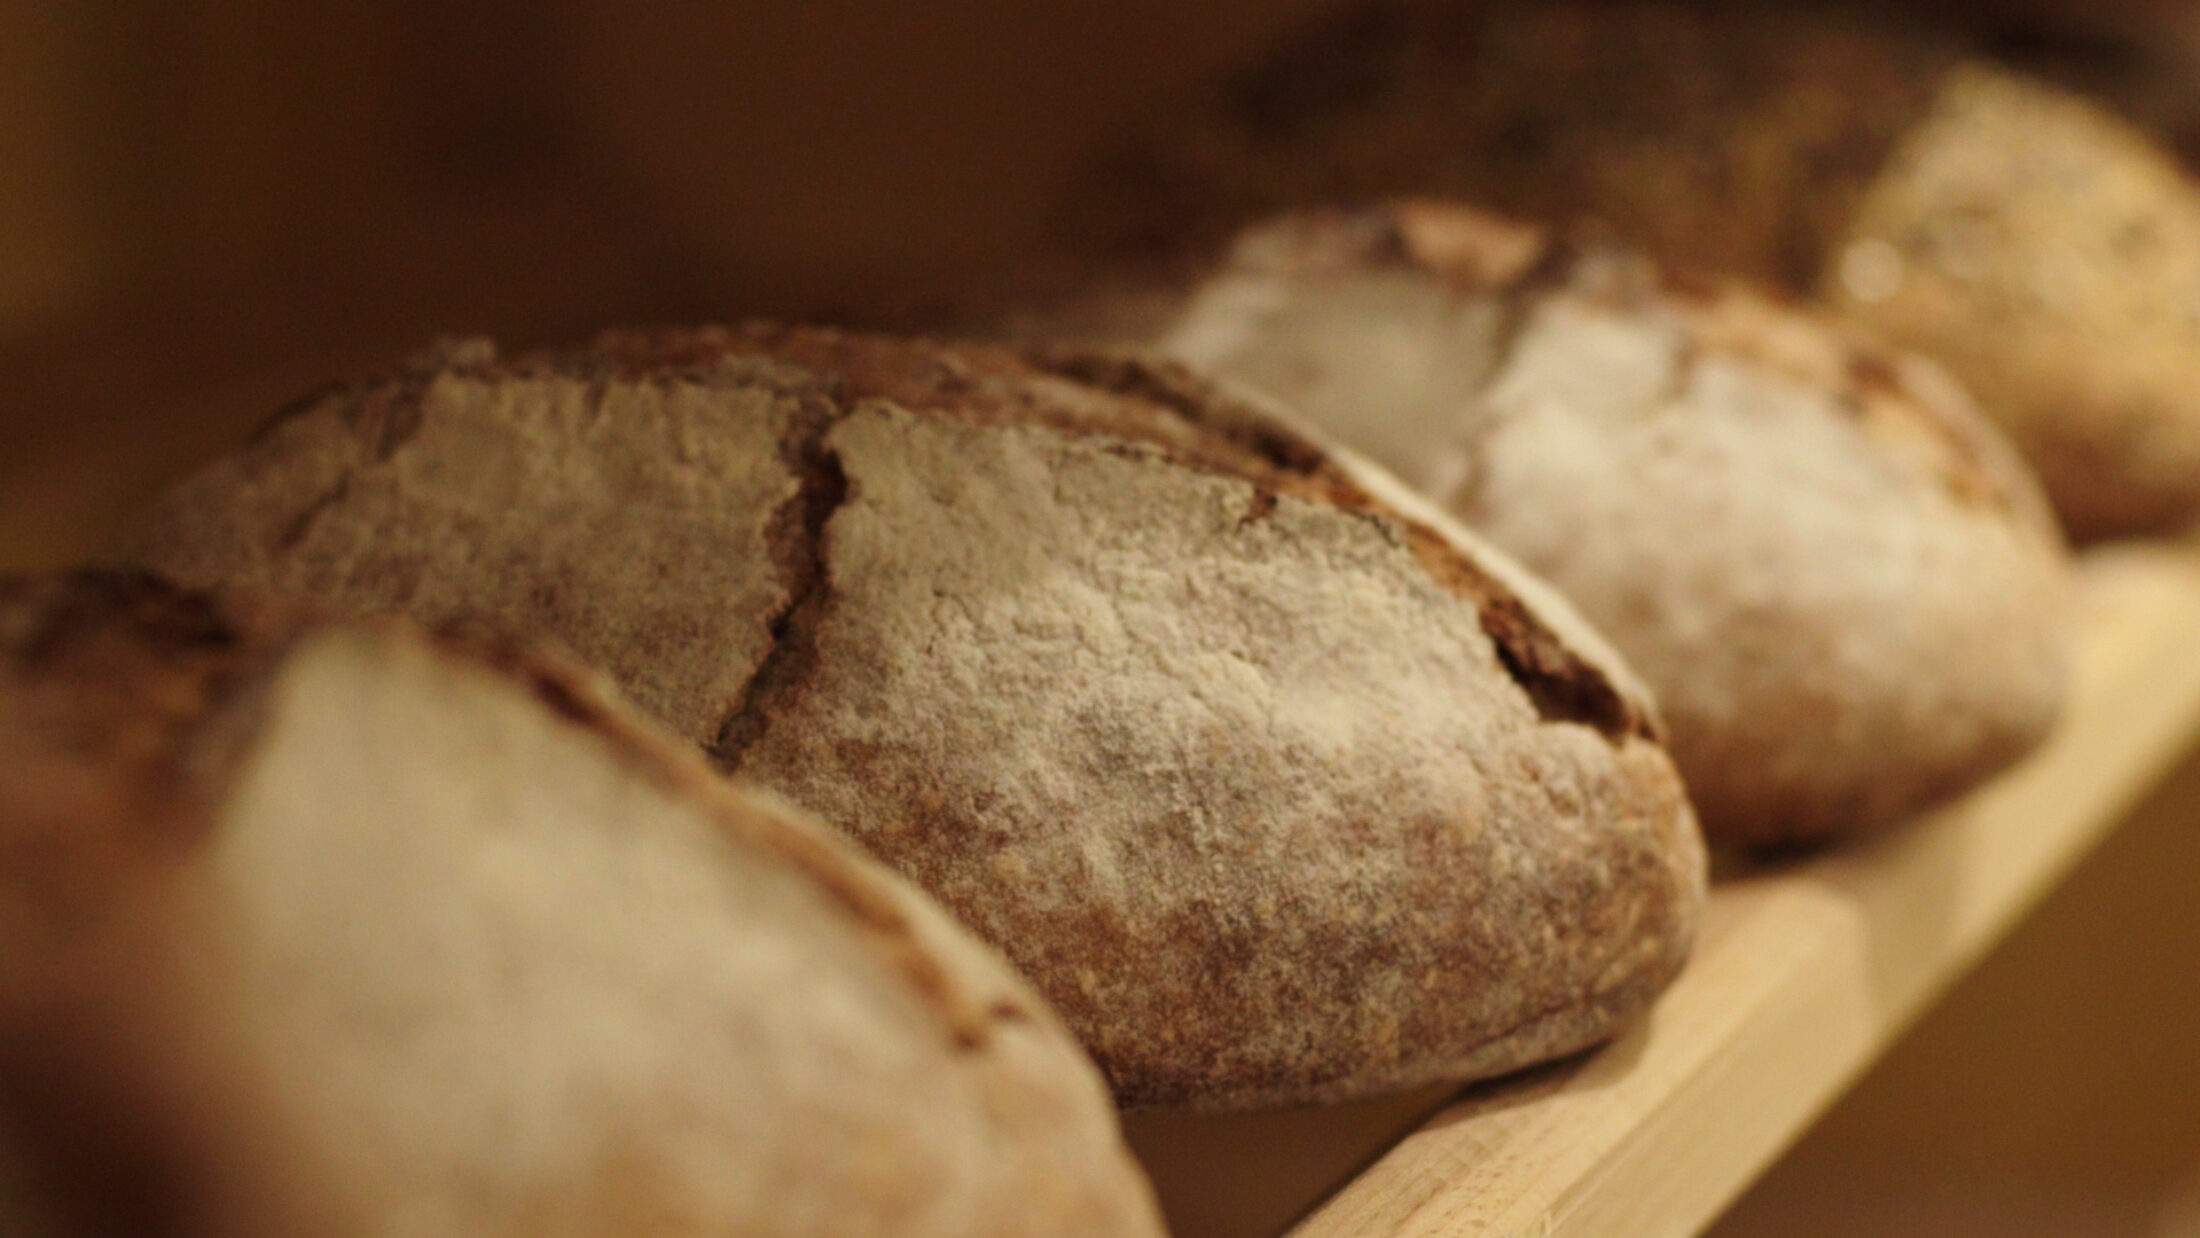 Getting involved through local artisanal organic bread